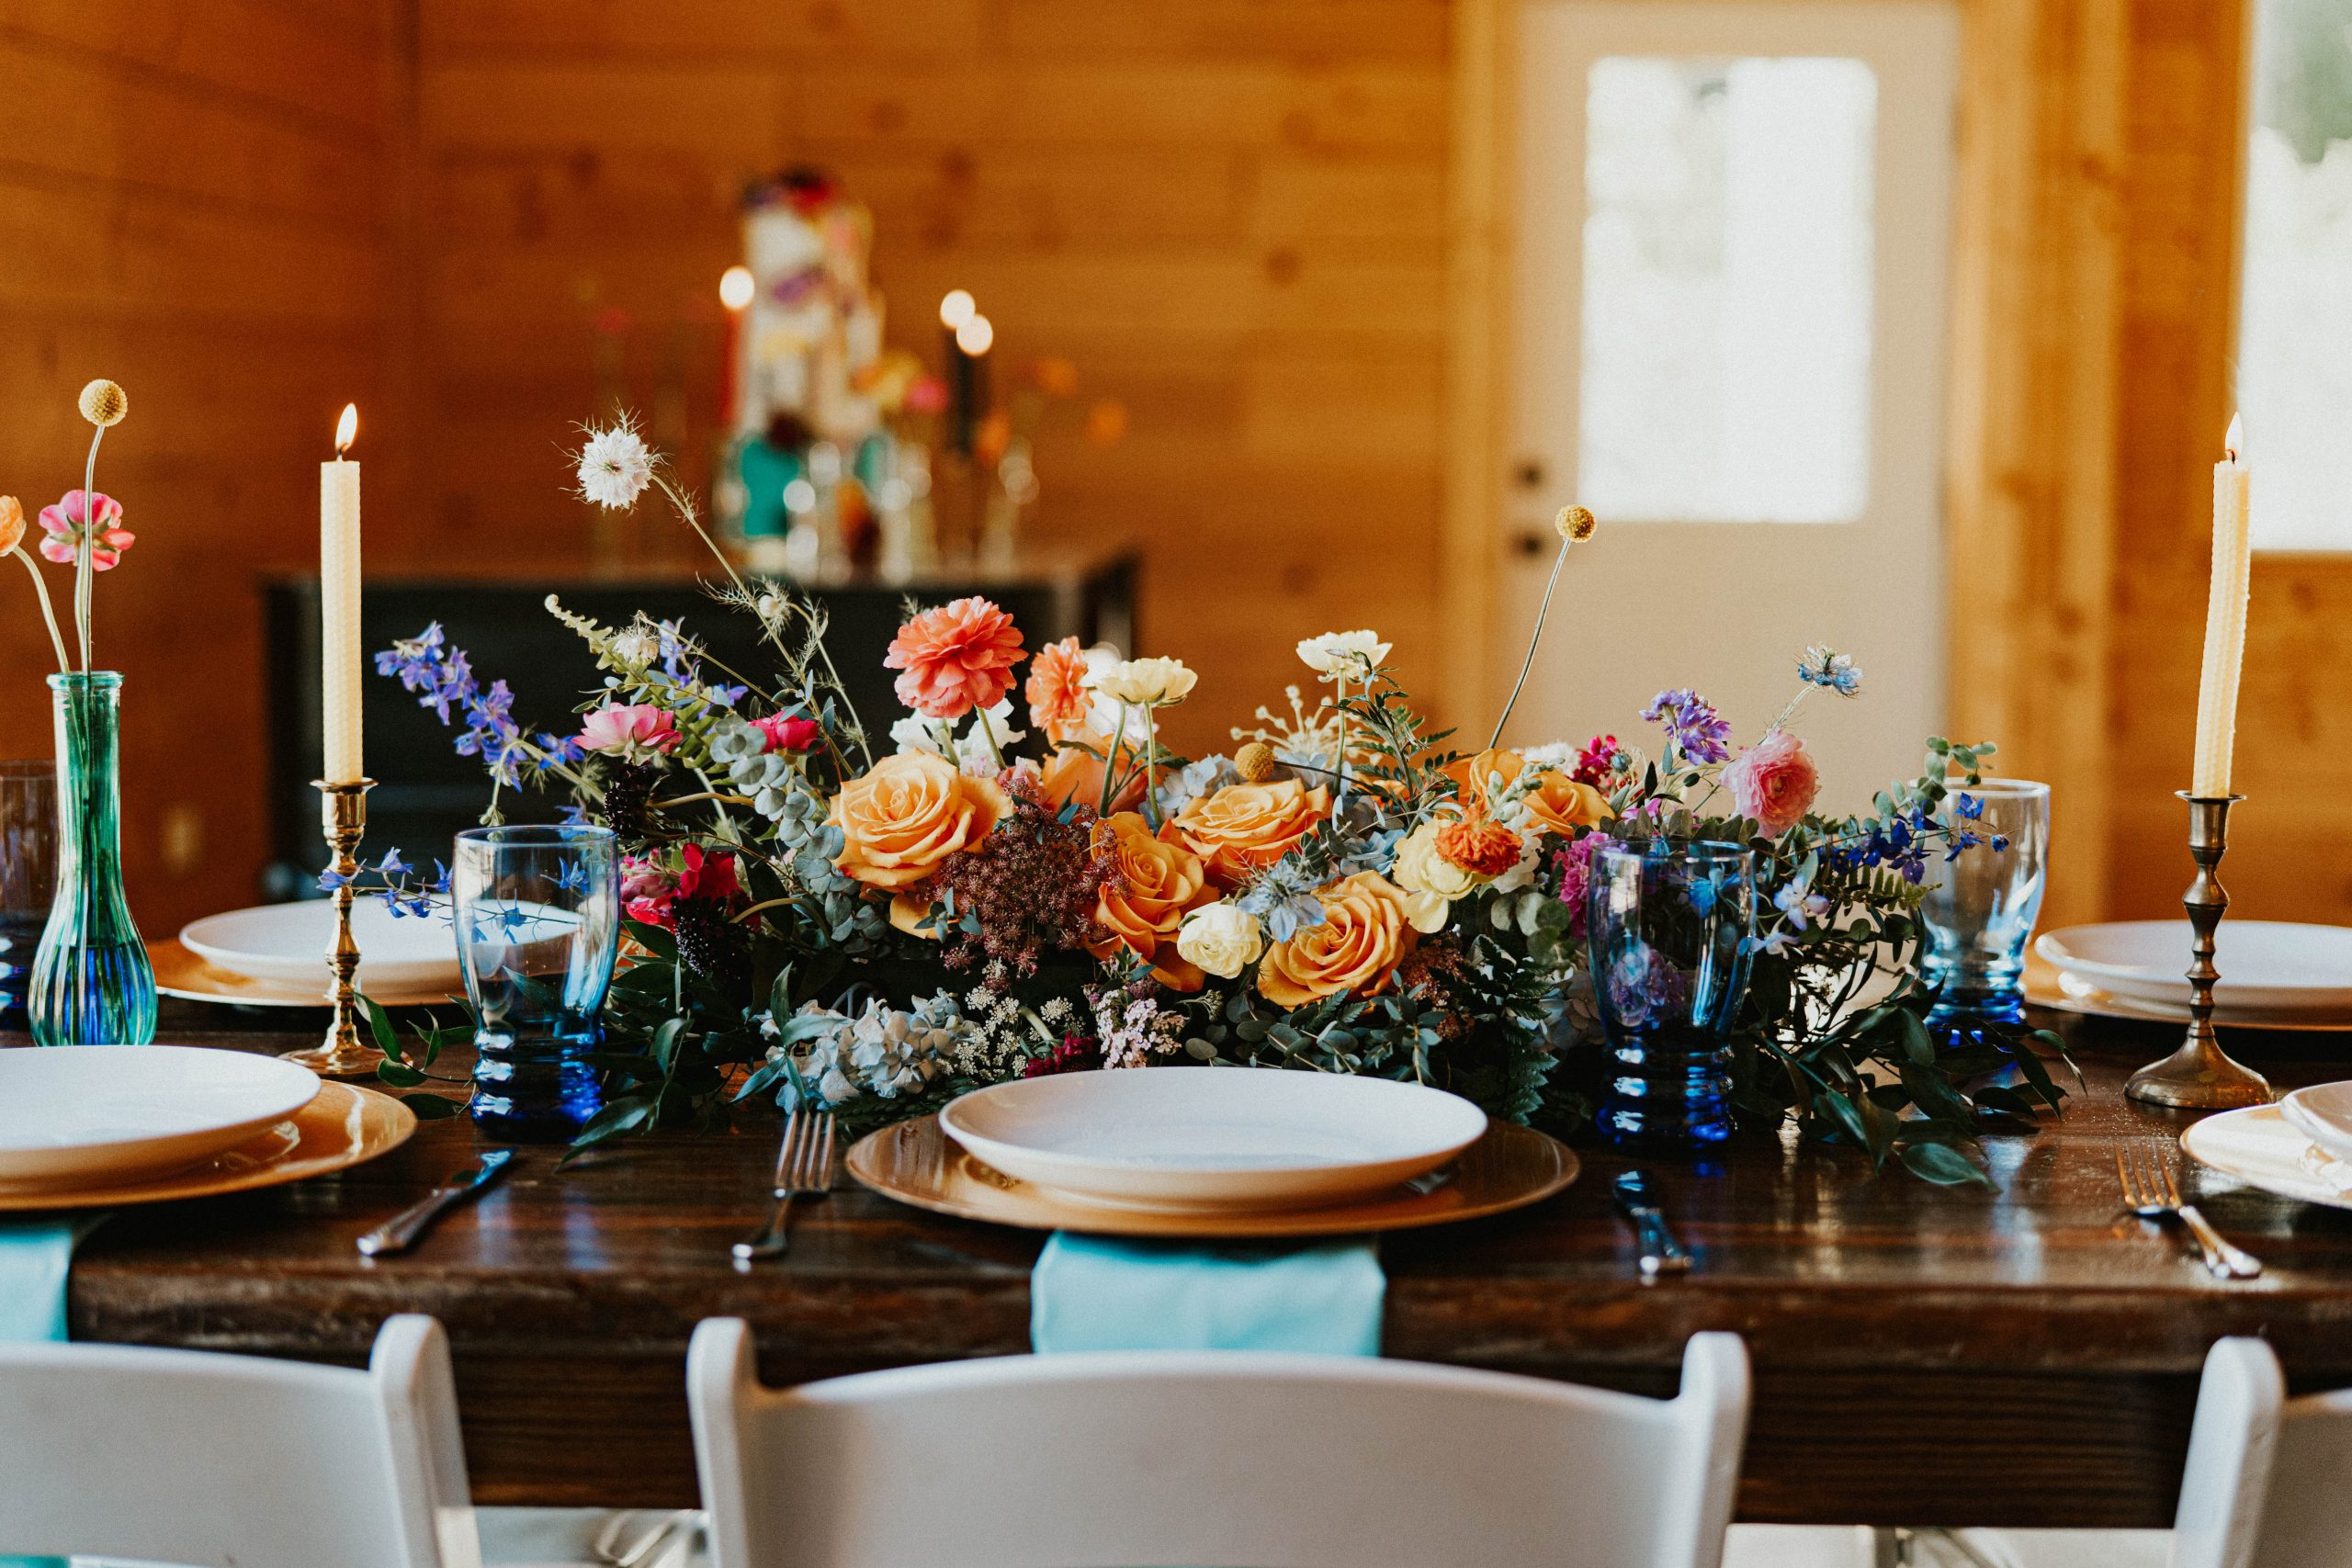 a beautiful table with flowers